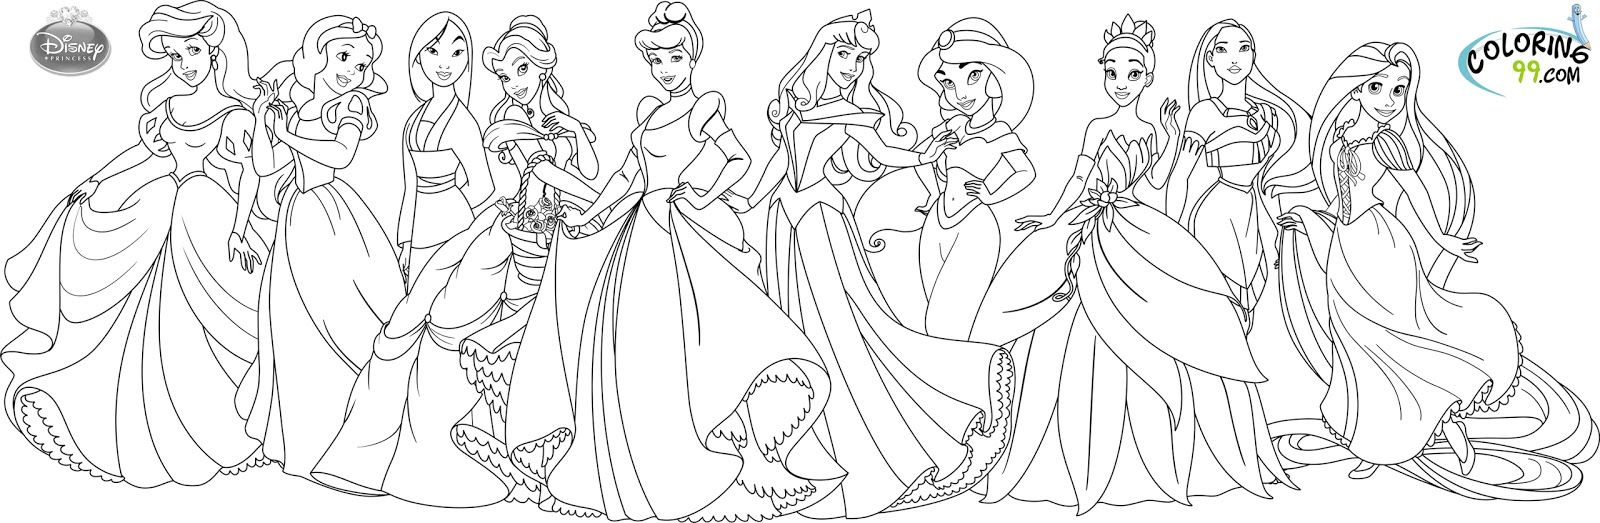 Disney Princess Coloring Pages | Minister Coloring | Disney princess coloring  pages, Disney princess colors, Disney coloring pages